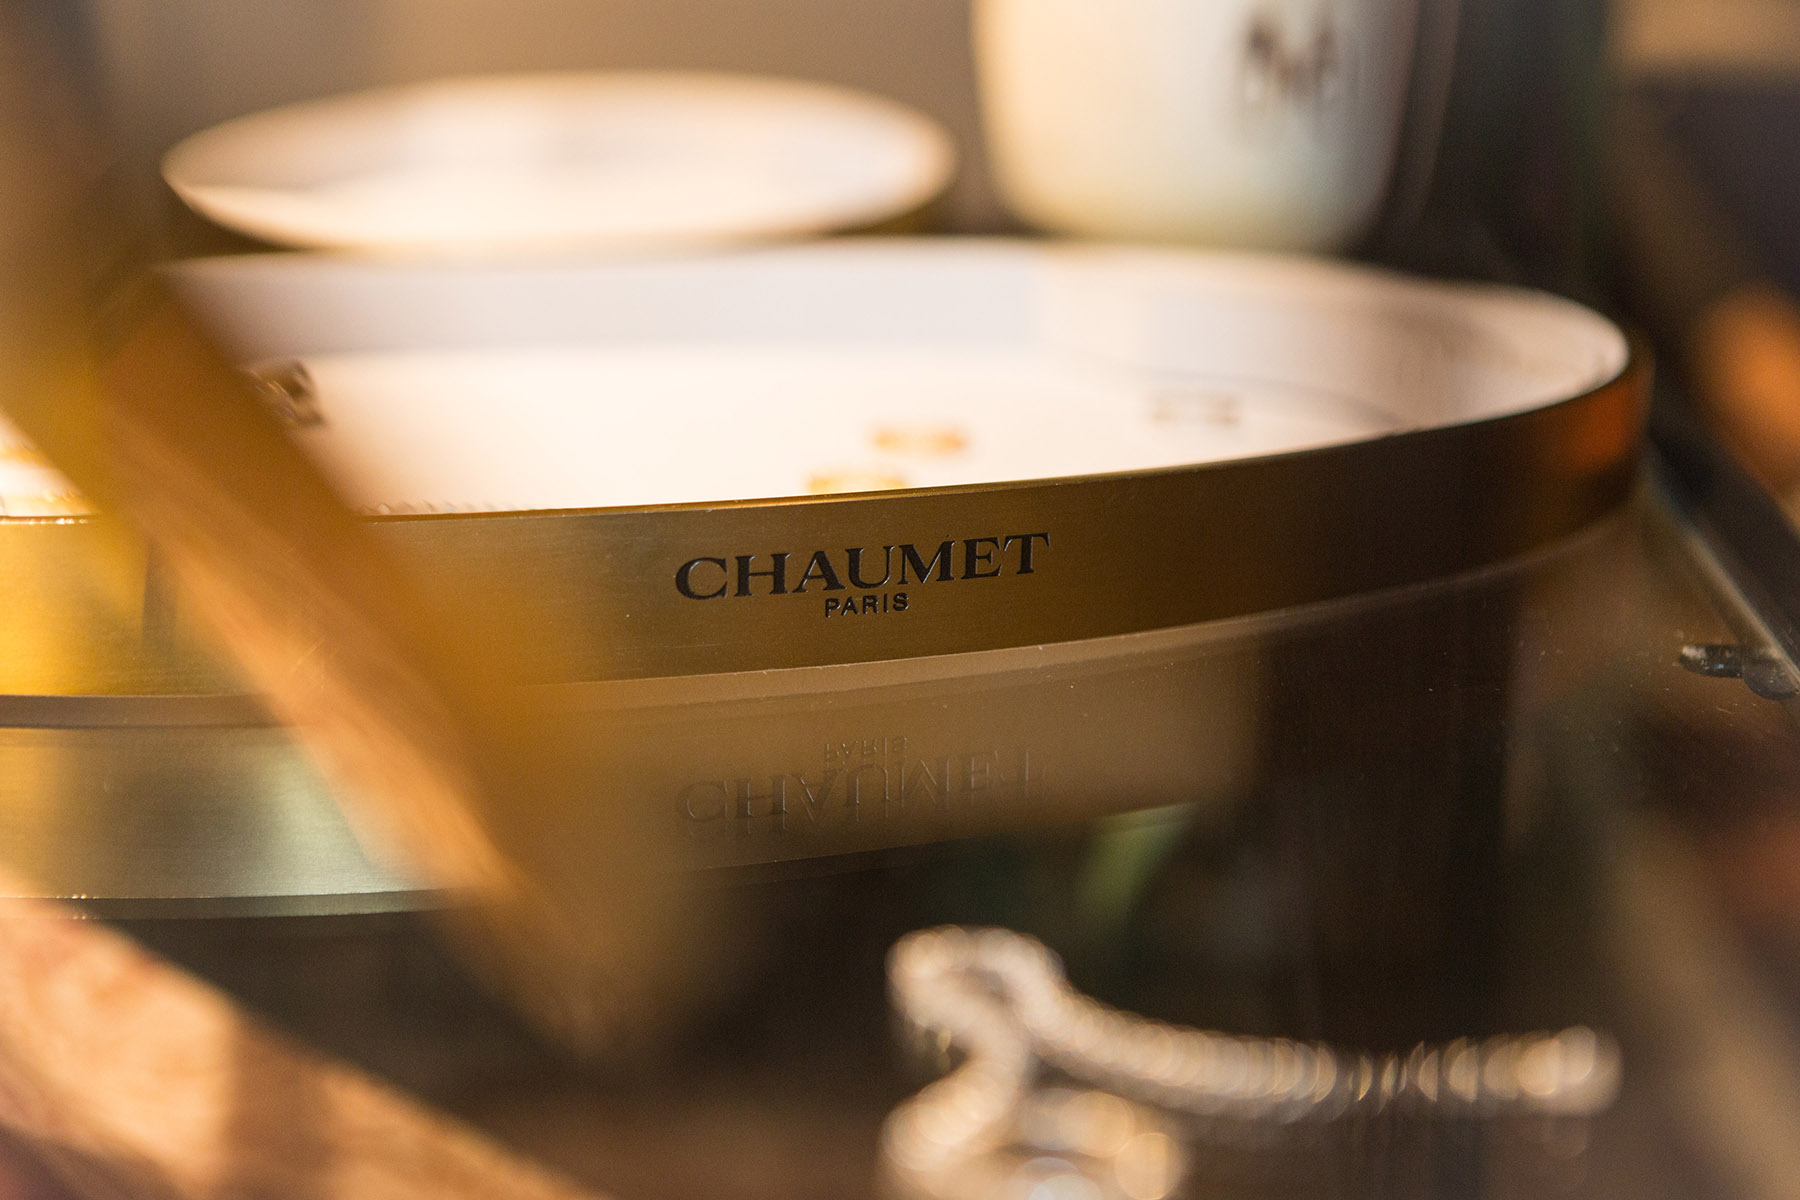 Jewelry display tray from Chaumet by Loesje Kessels Event Photographer Dubai